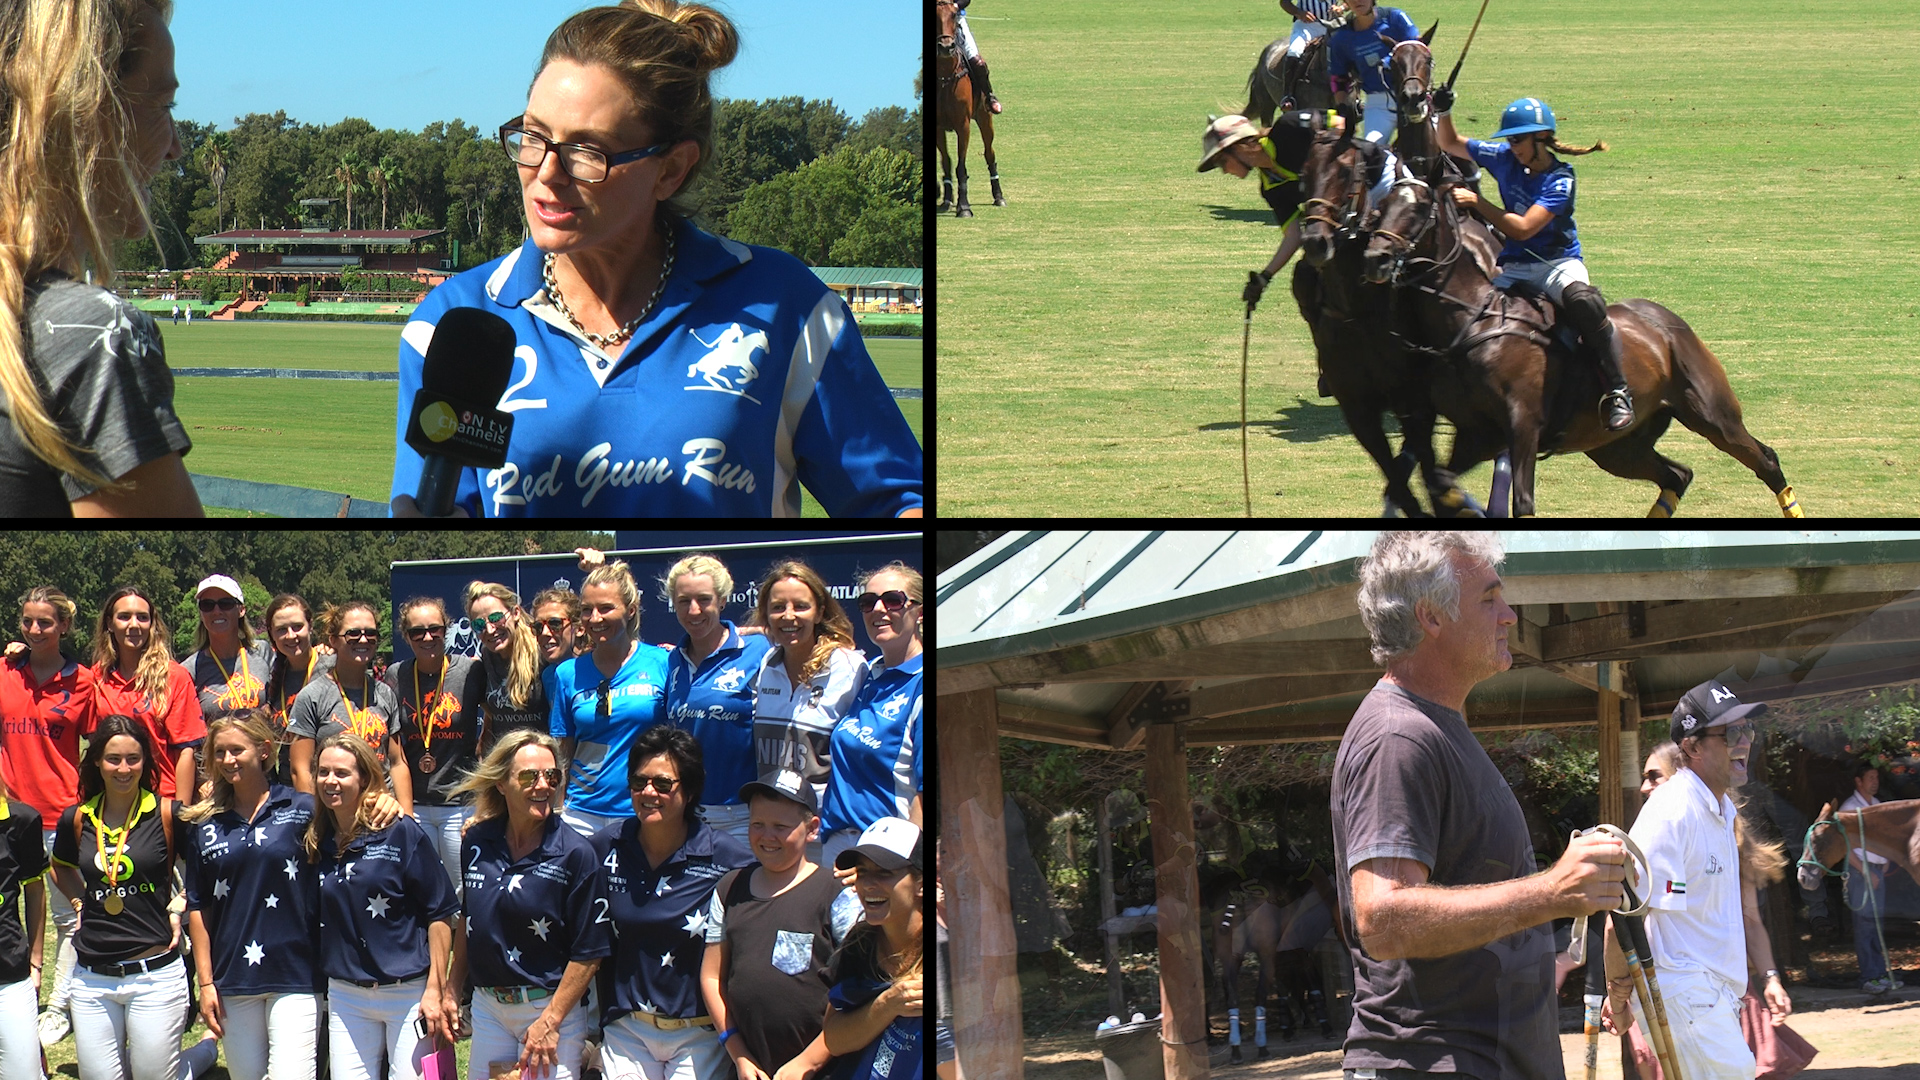 Aussie Teams at Women's Spanish Polo Championships